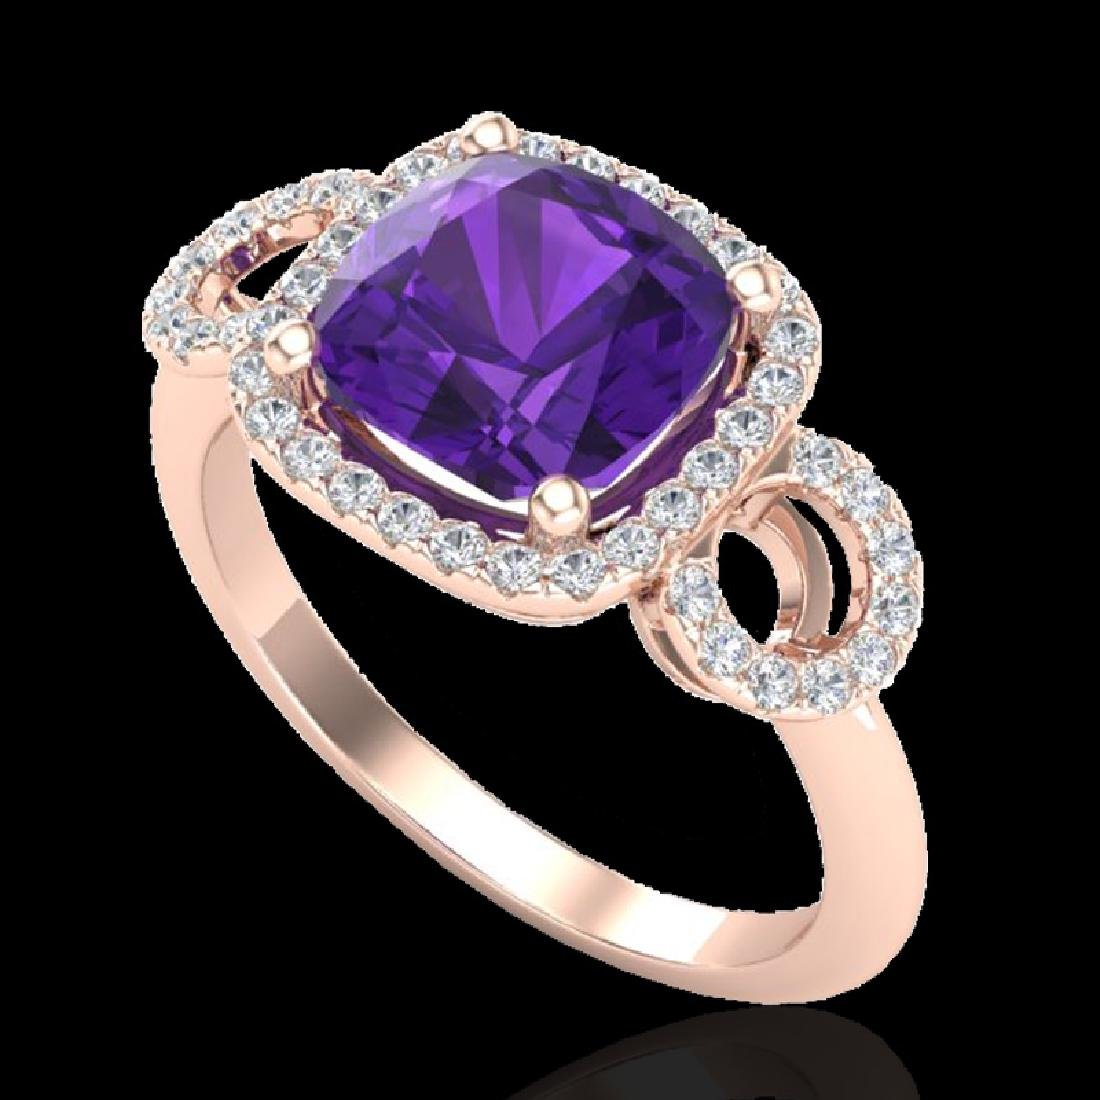 3.75 CTW Amethyst & Micro VS/SI Diamond Ring 14K Rose - 2